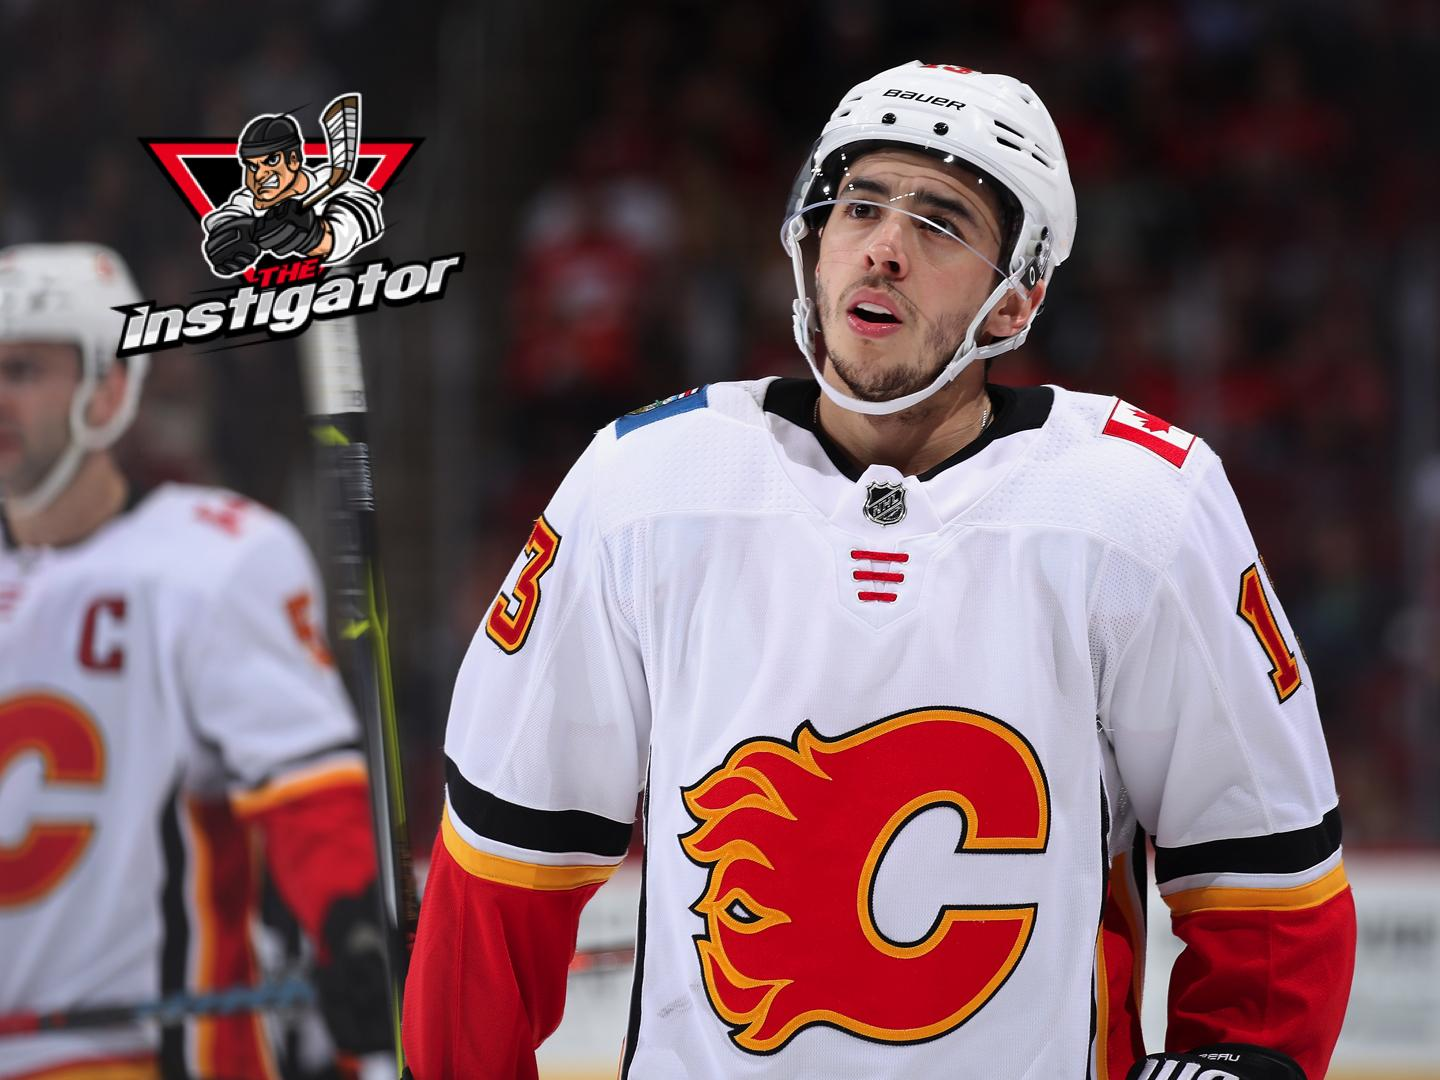 Welcome to Playoff Hockey: Johnny Gaudreau